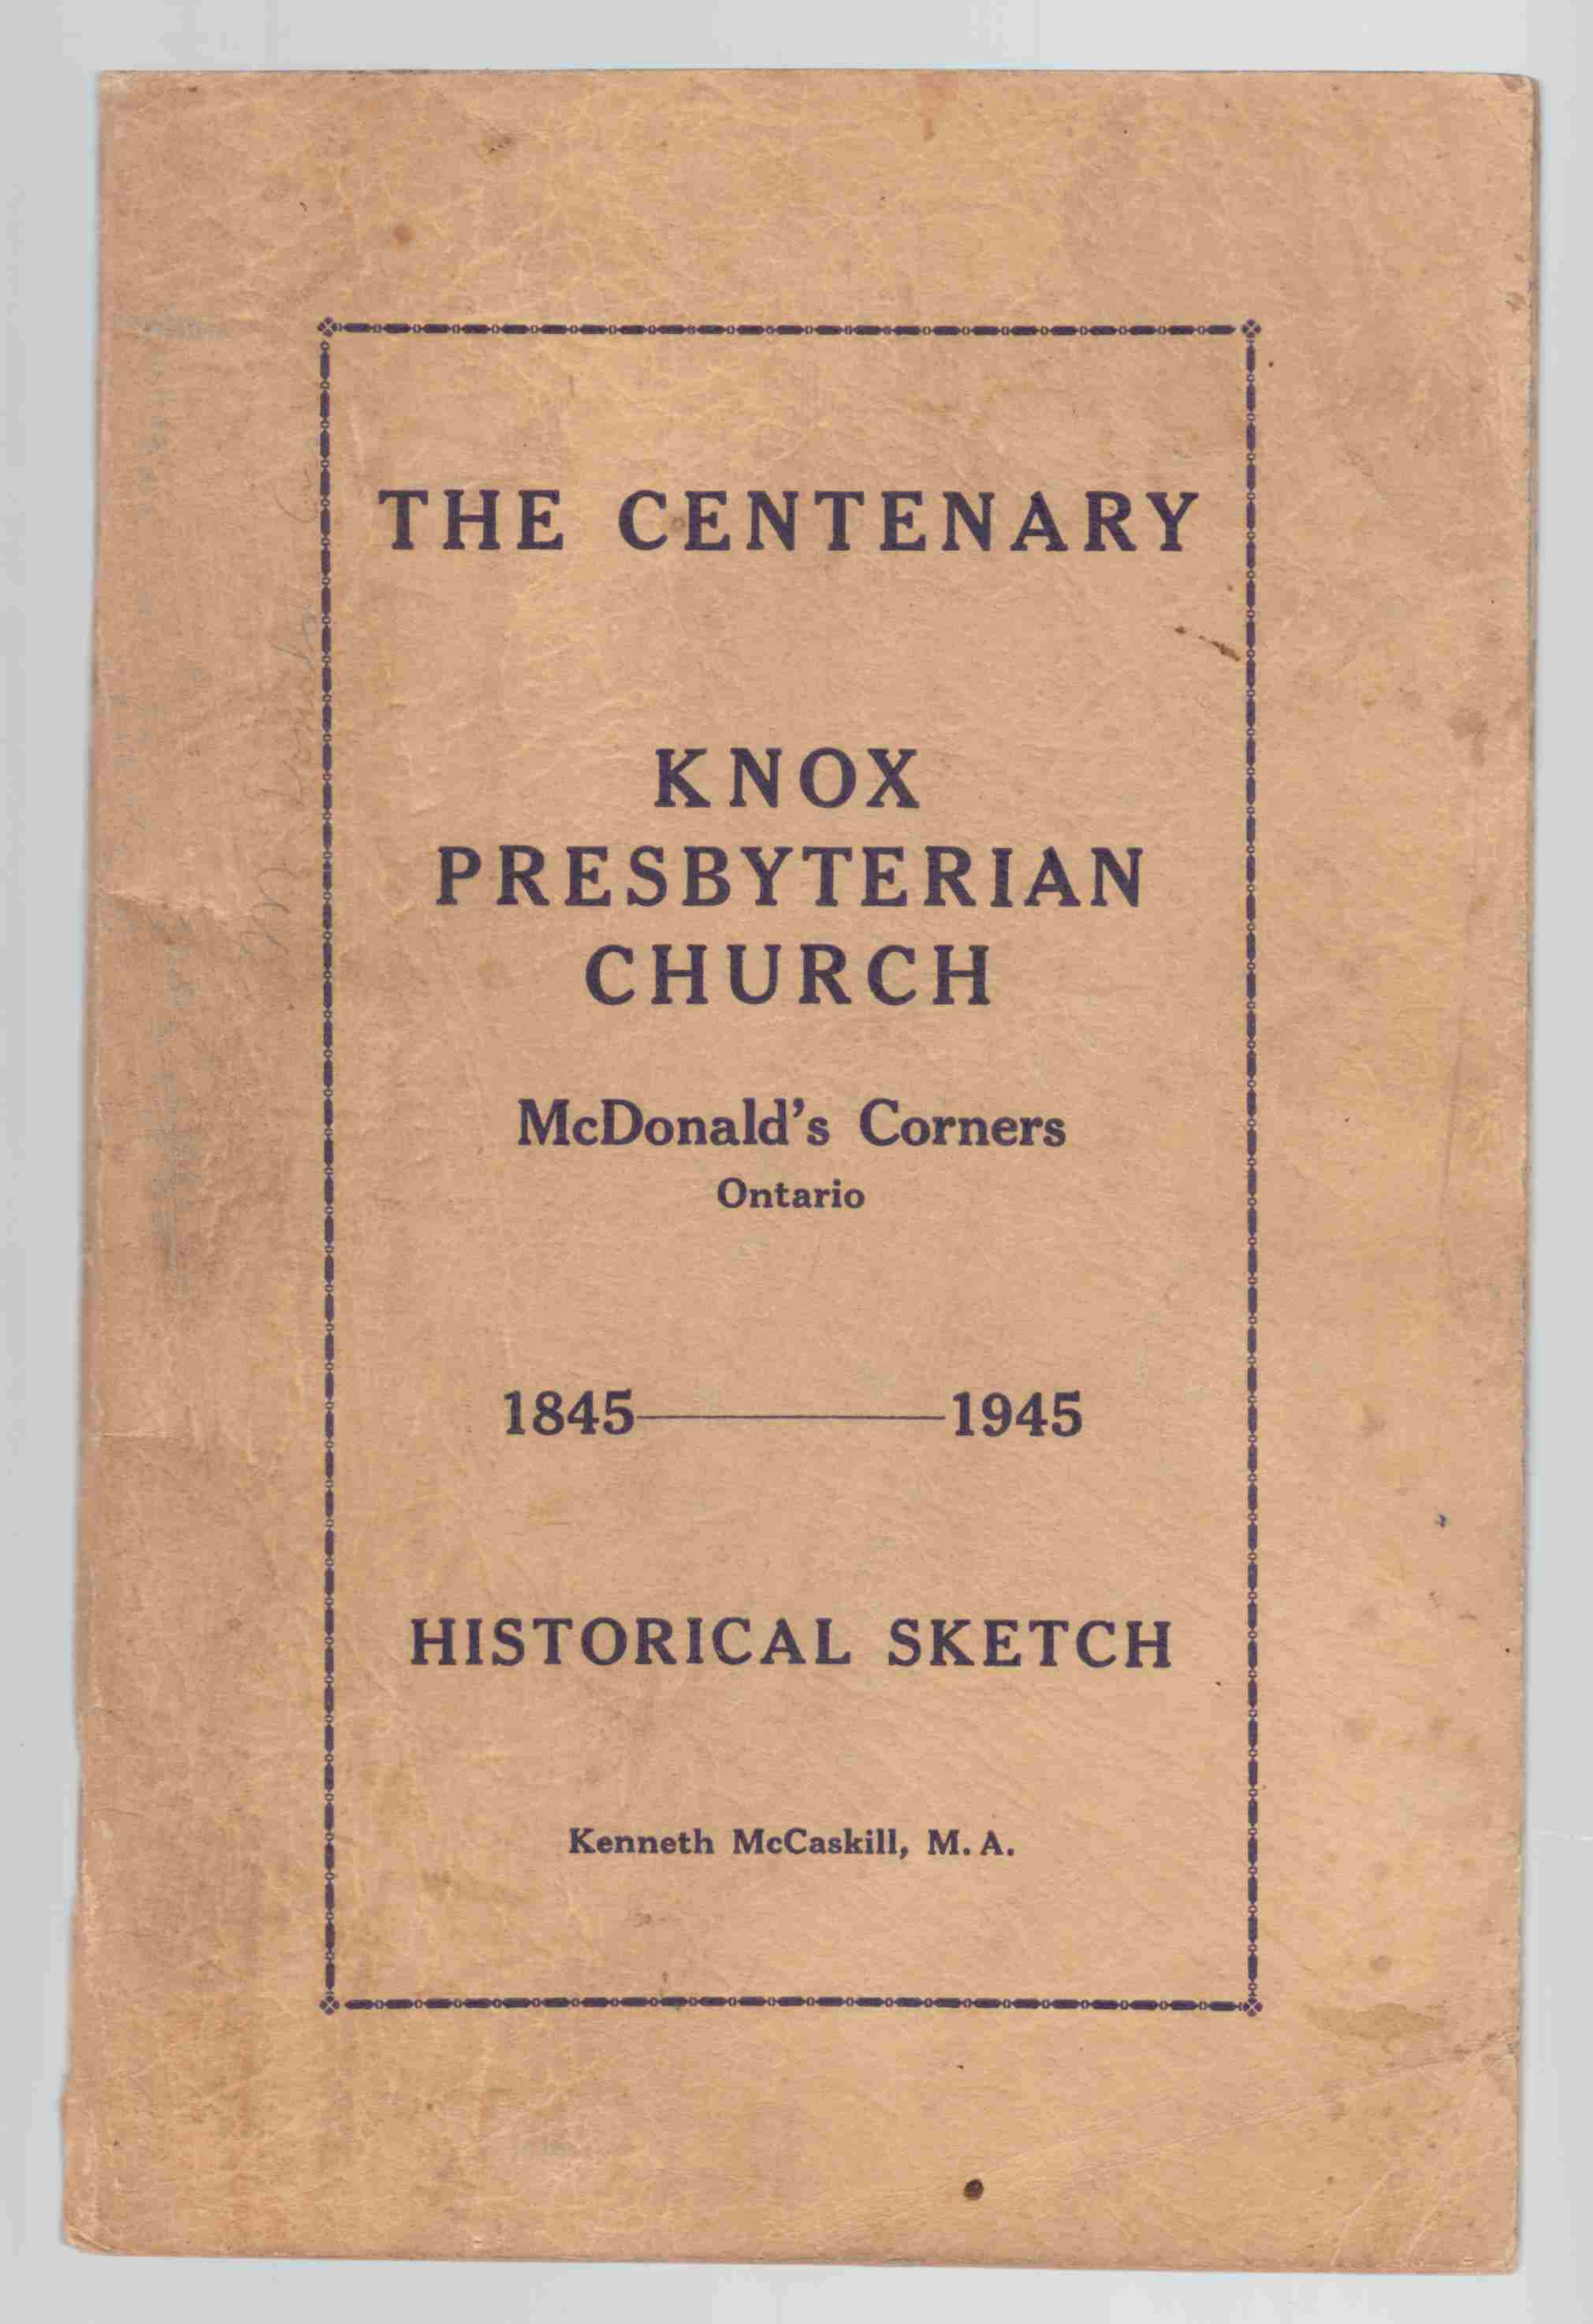 Image for The Centenary Knox Presbyterian Church Mcdonald's Corners, Ontario 1845 - 1945 Historical Sketch